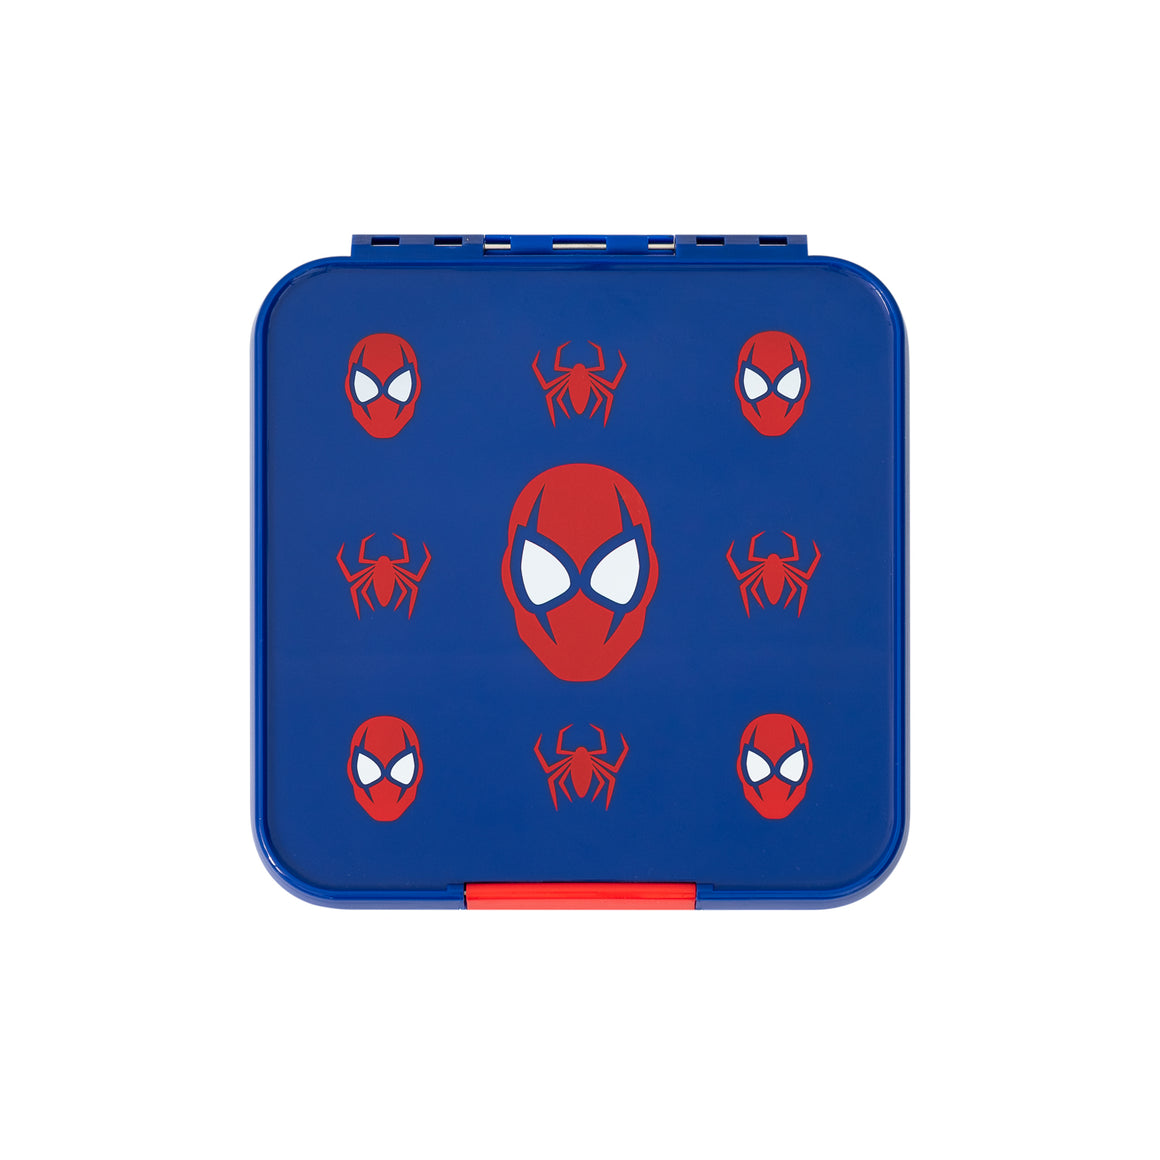 Little Lunch Box Co - Bento 5 - Spider - PRE-ORDER NOW! - phunkyBento